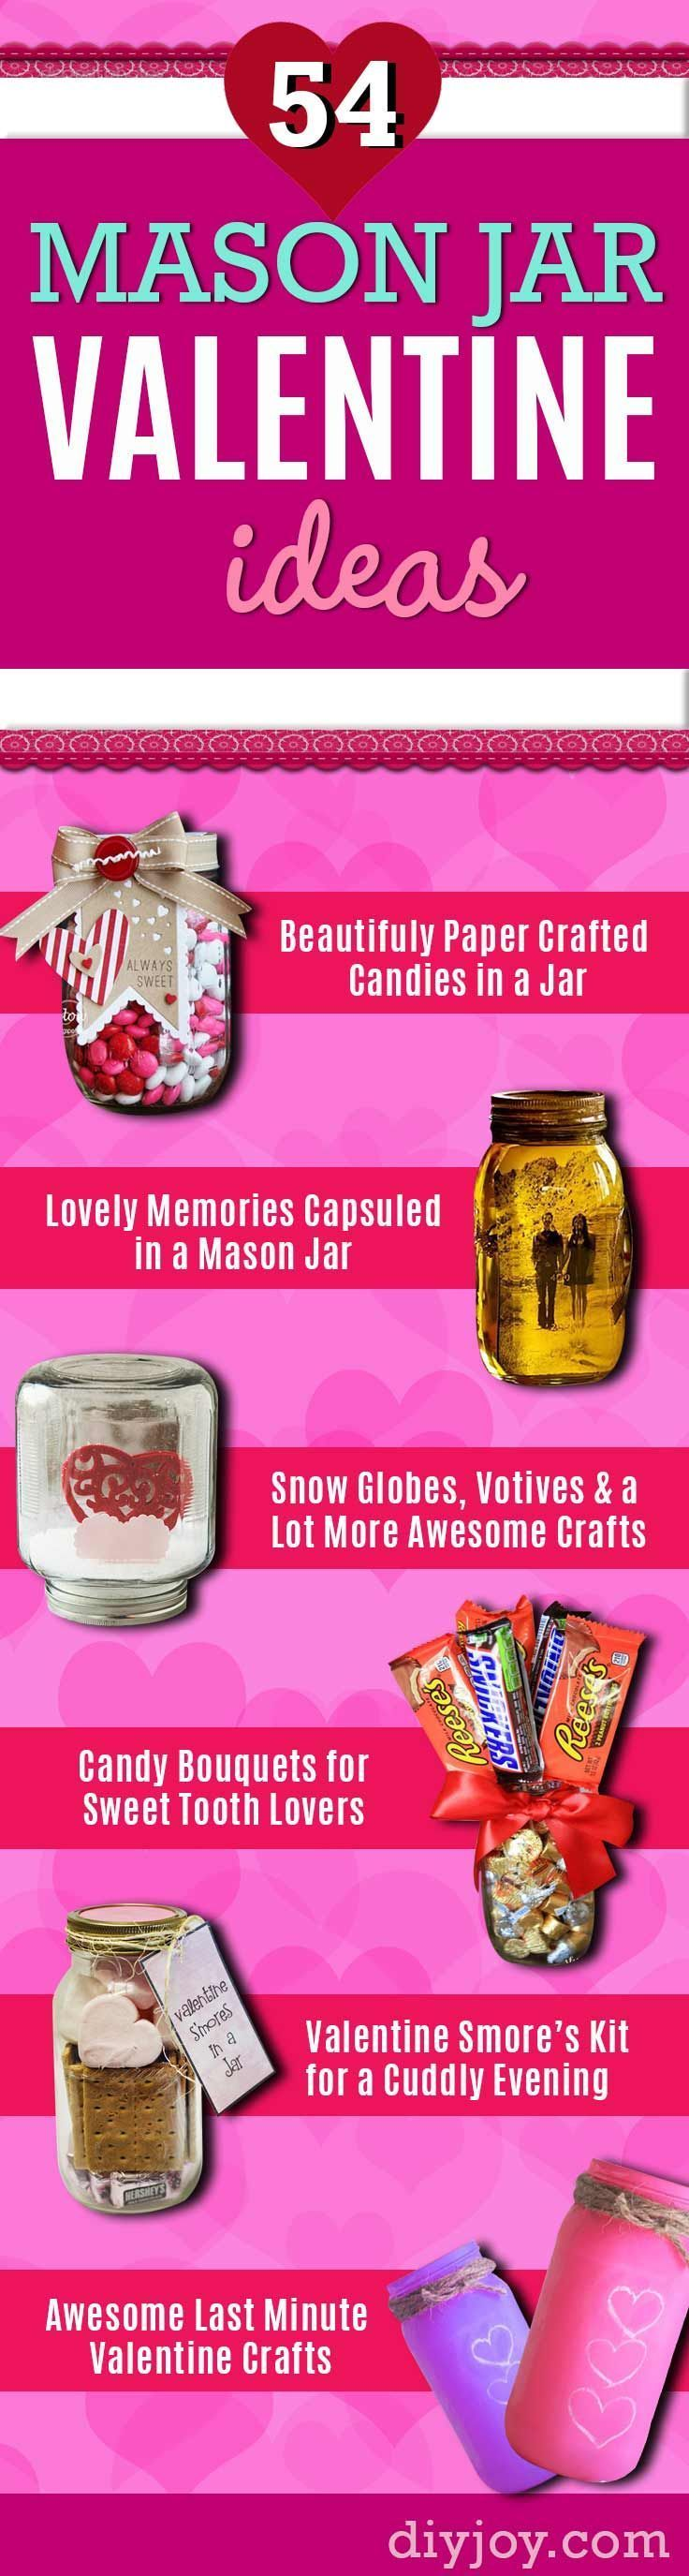 what to give a guy friend for valentines day